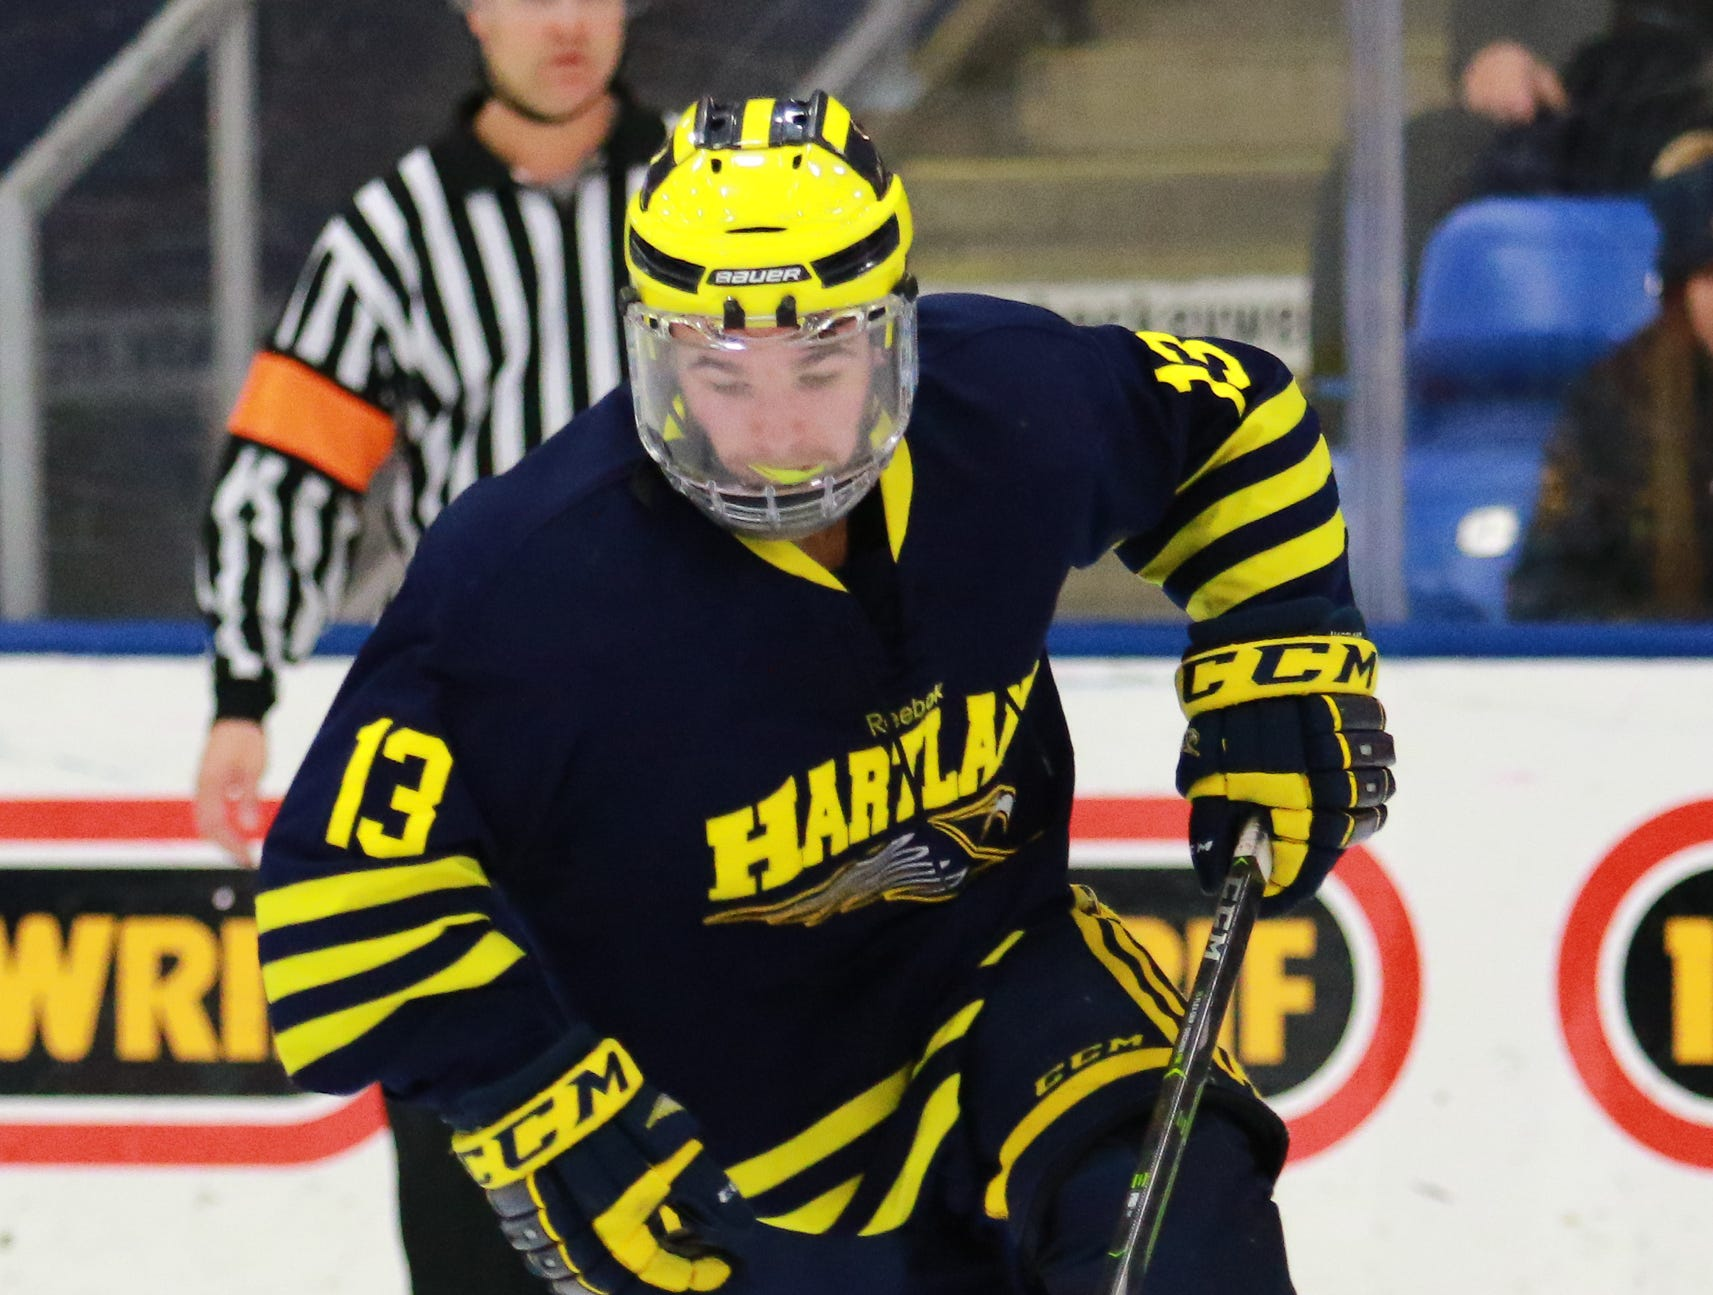 Hartland's Dakota Kott skates with the puck in a 4-0 victory over Trenton in the state Division 2 championship hockey game on Saturday, March 9, 2019 at USA Hockey Arena.